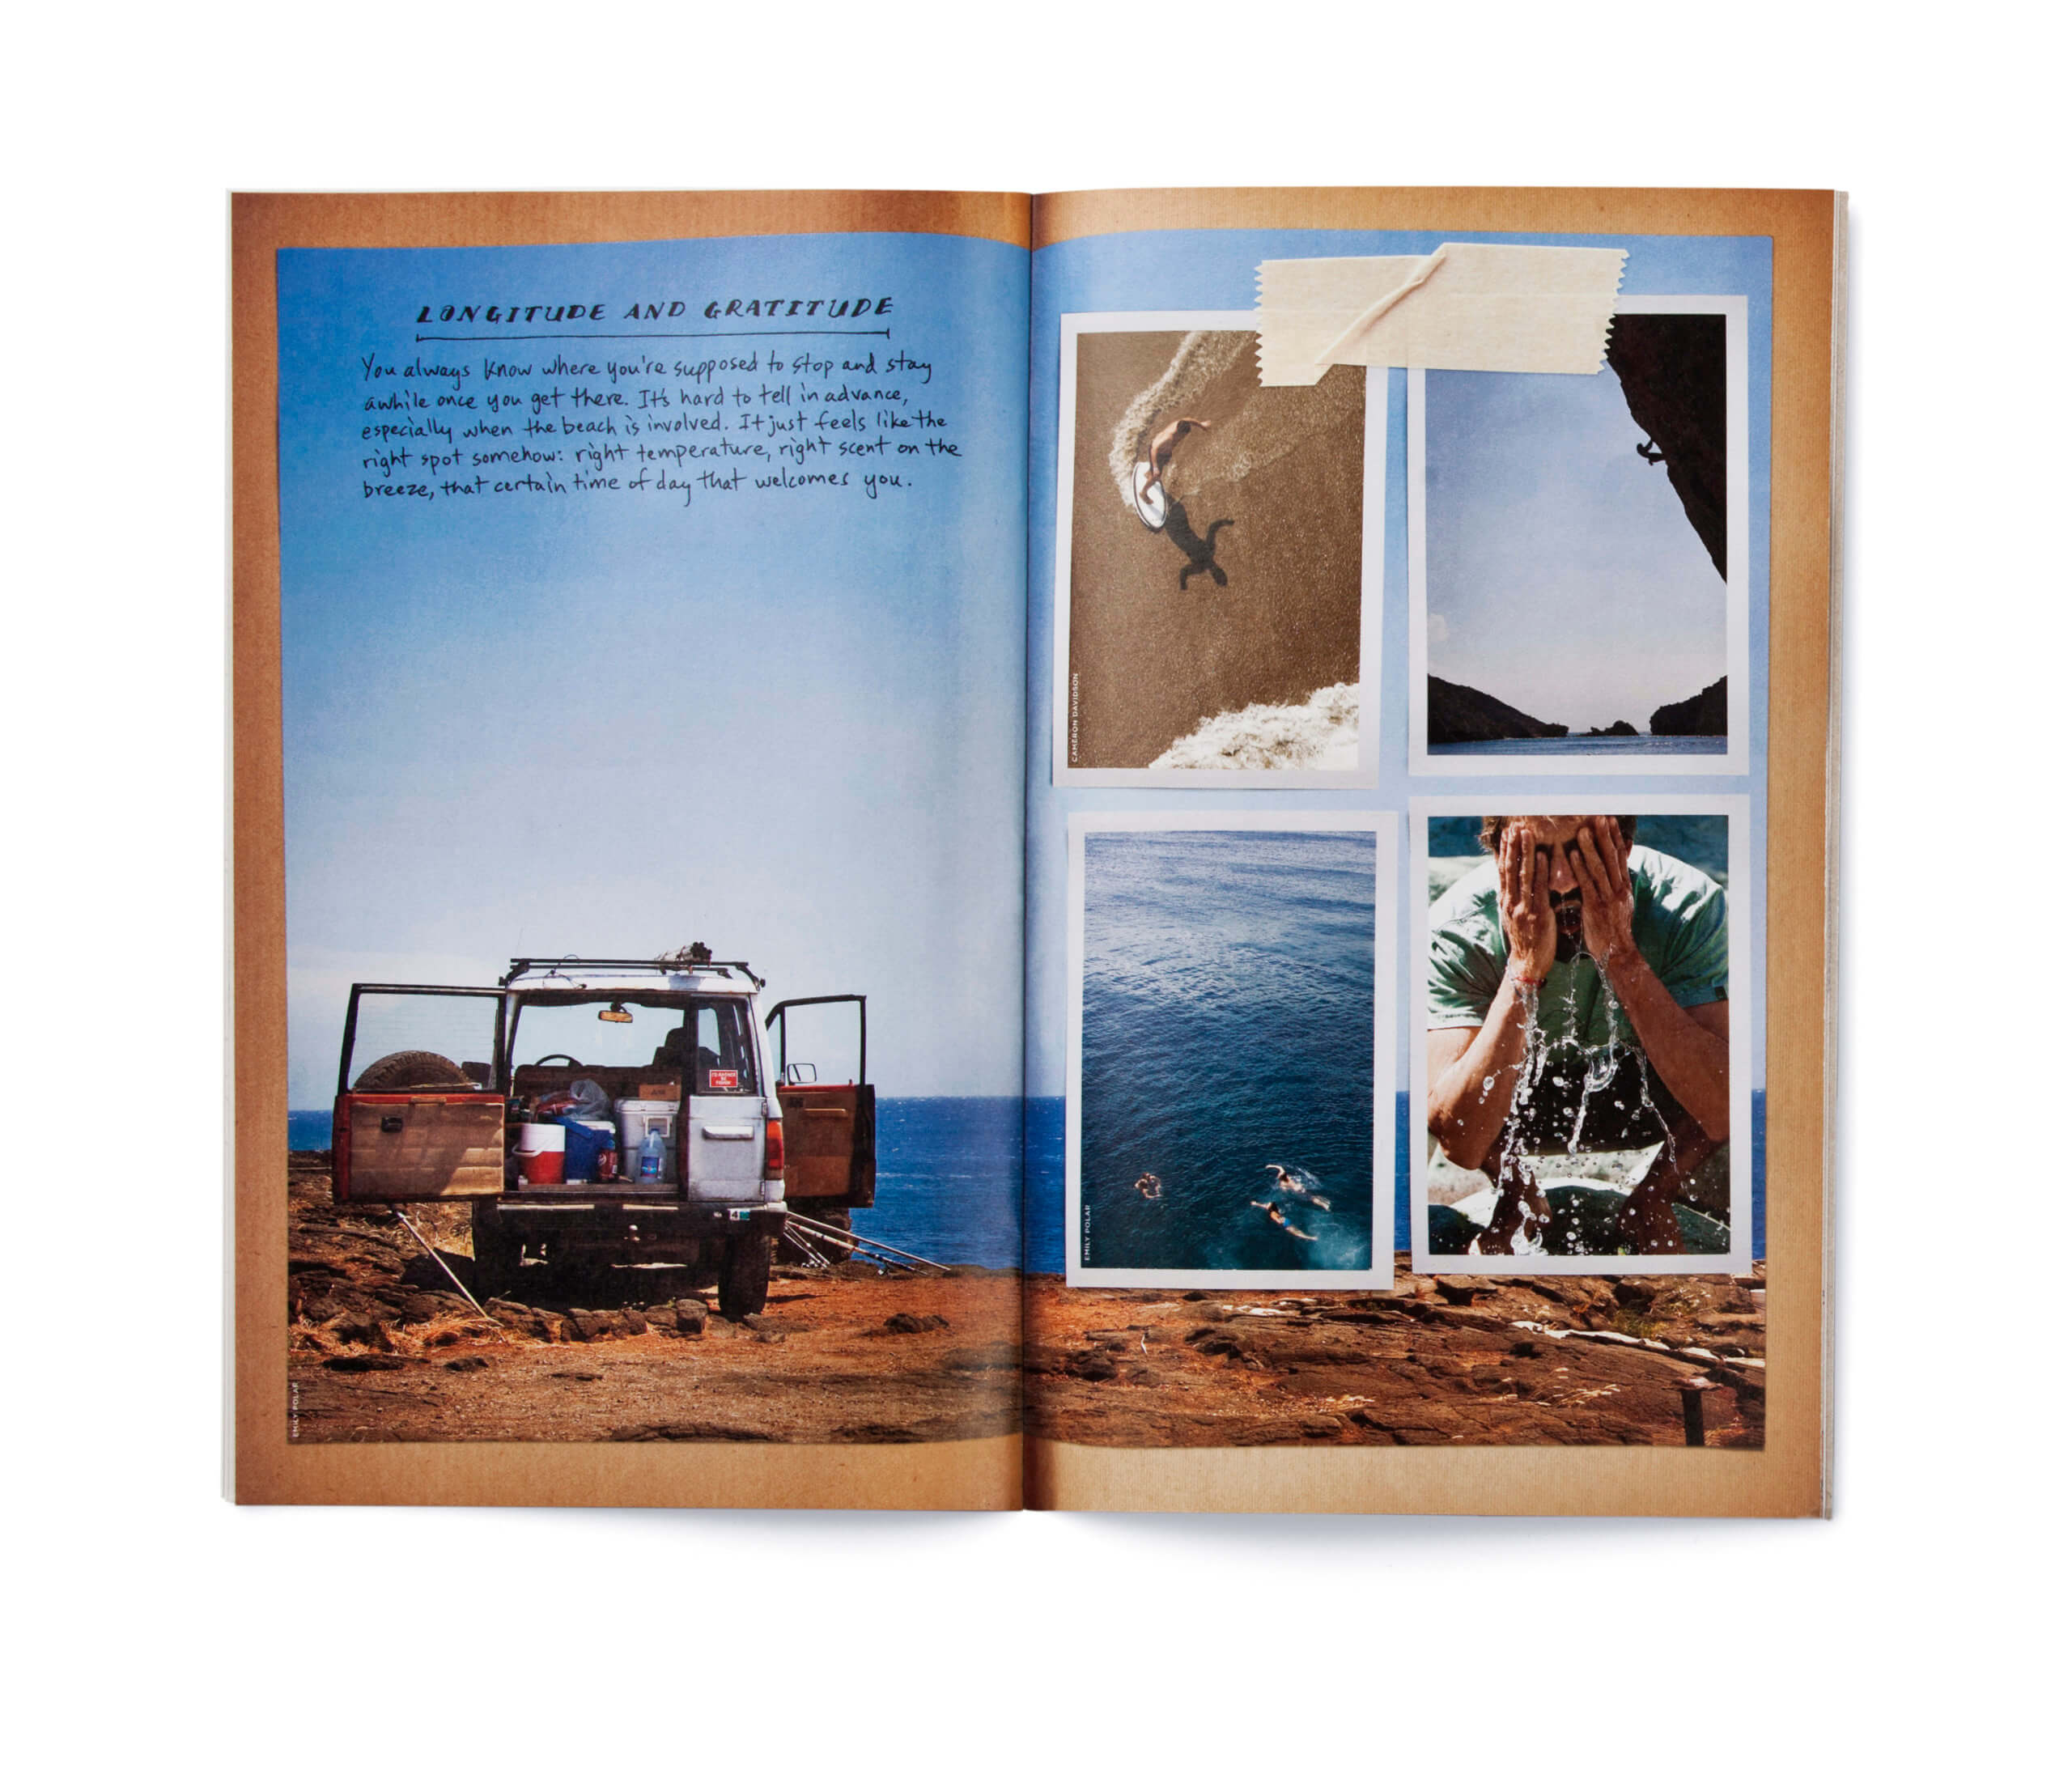 Open catalog showing back of jeep and outdoor activities